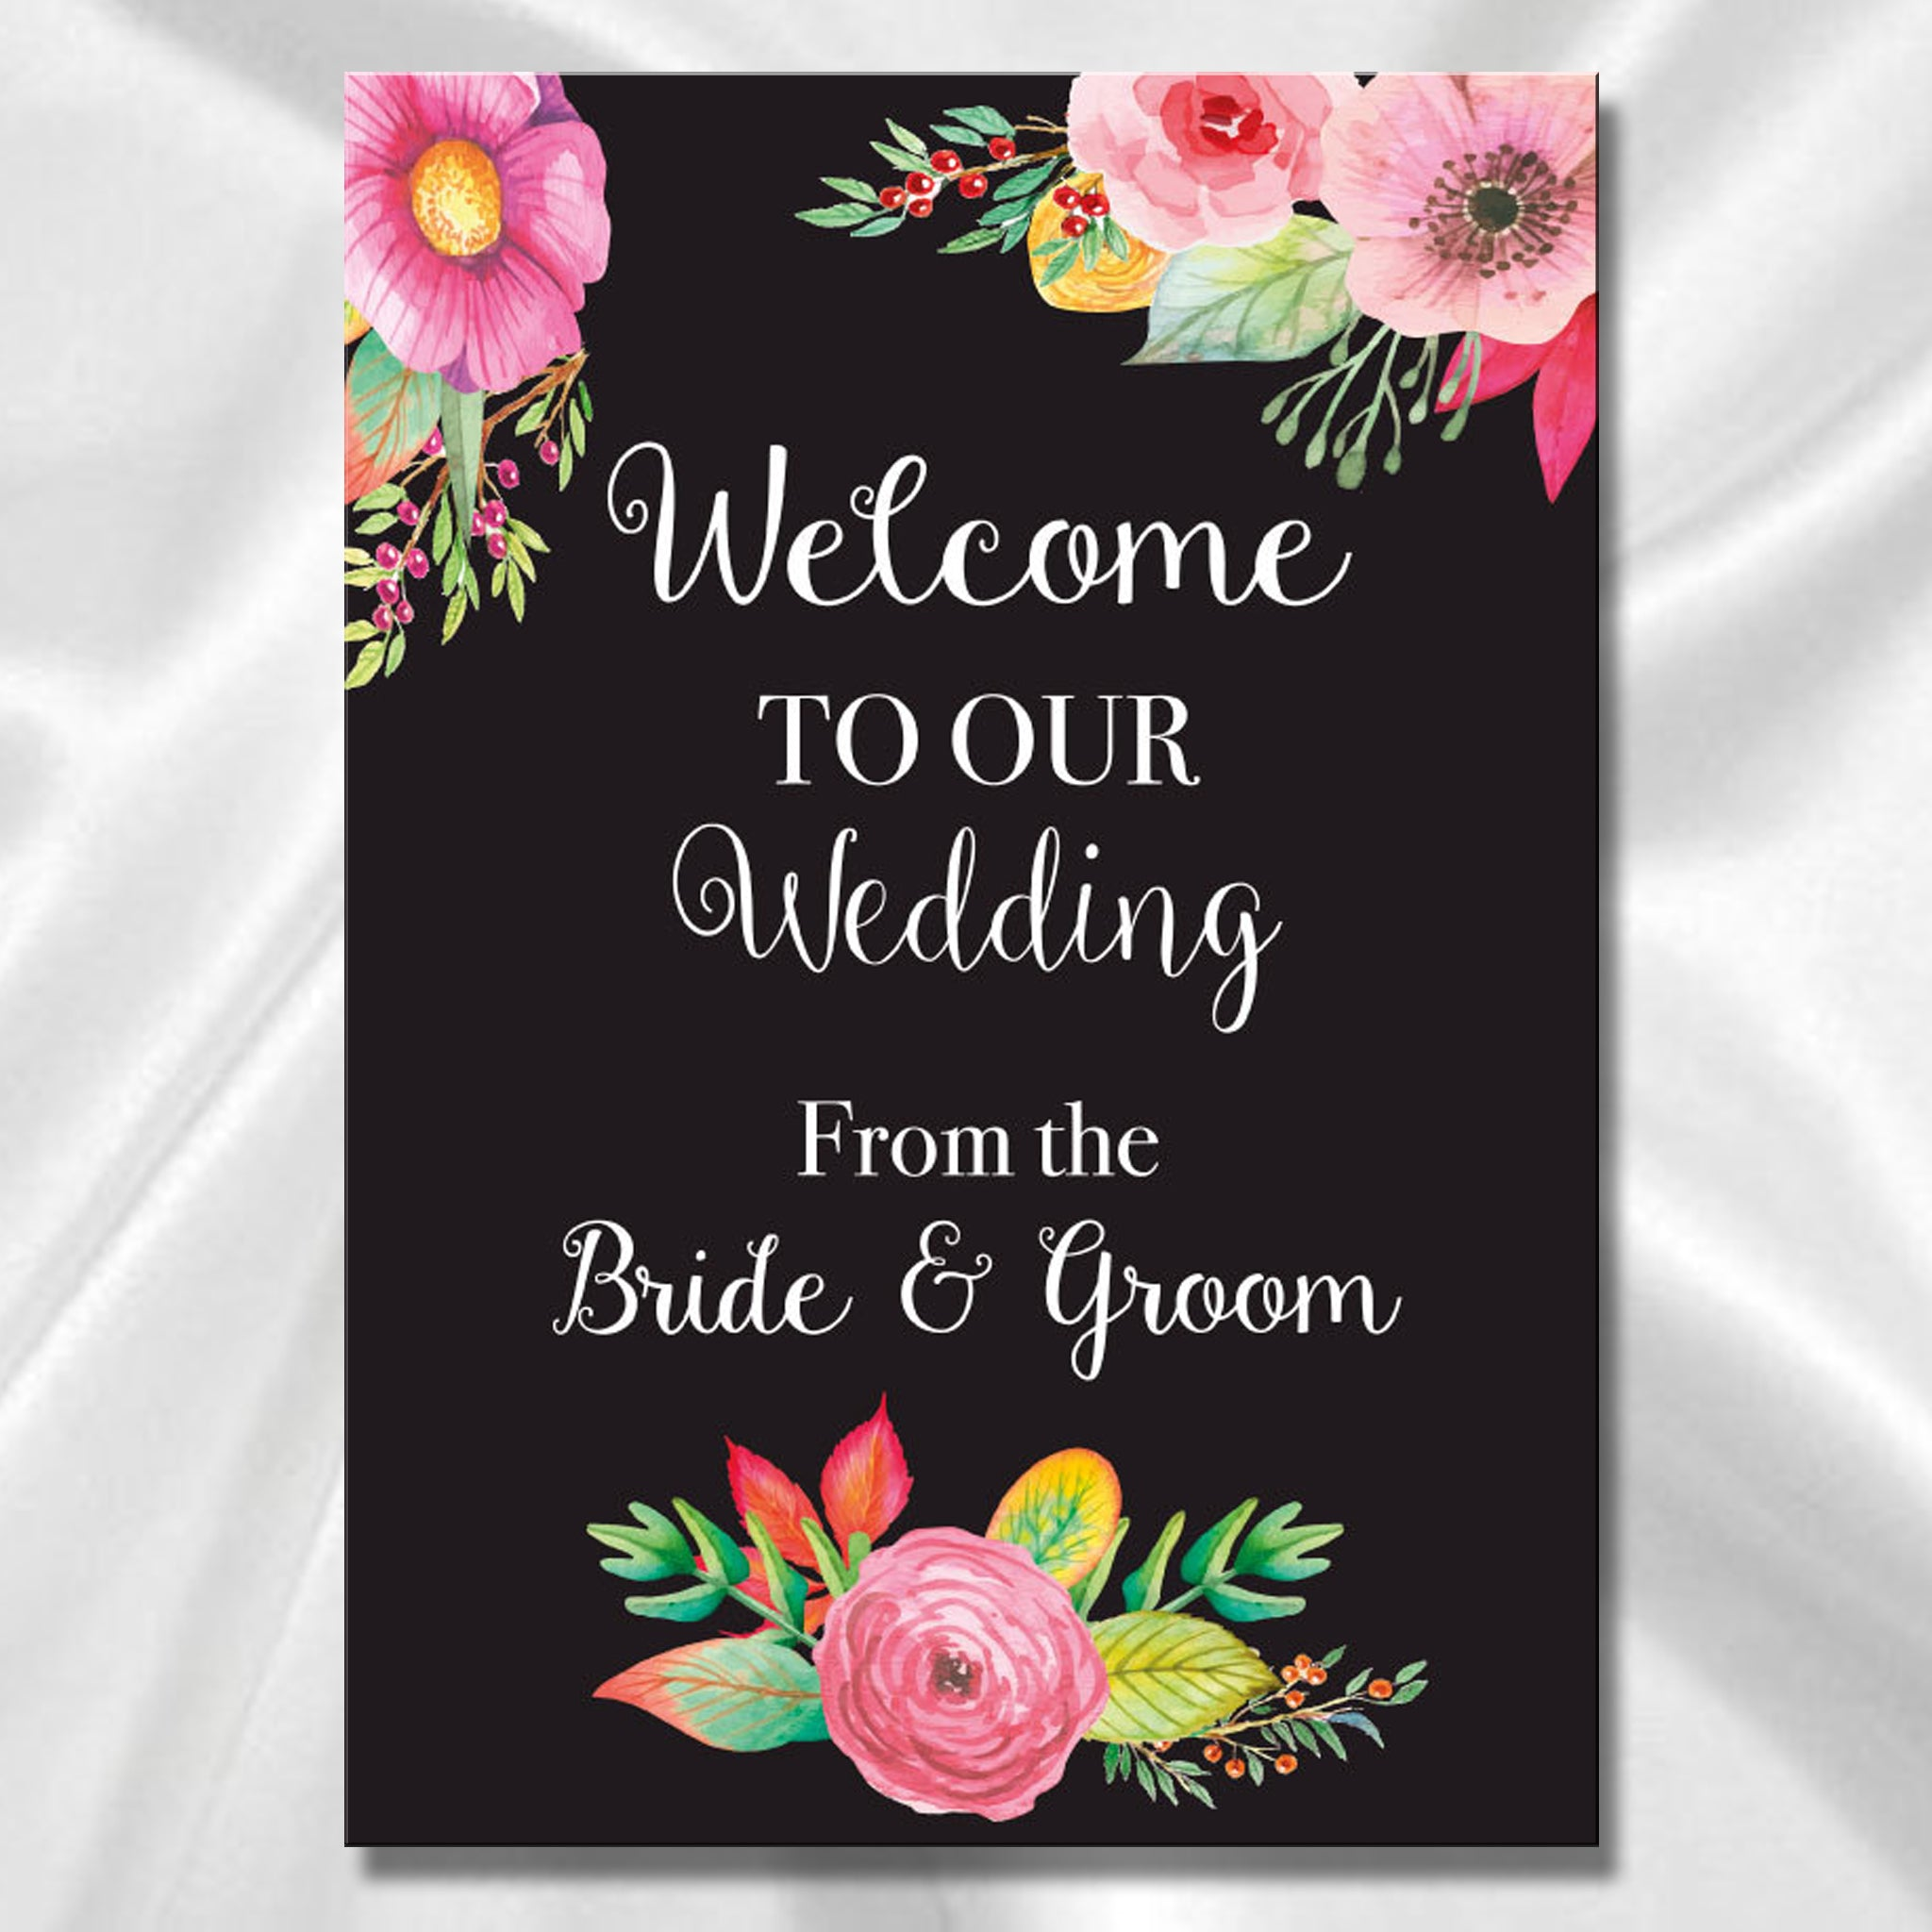 Wedding Welcome Sign - Black